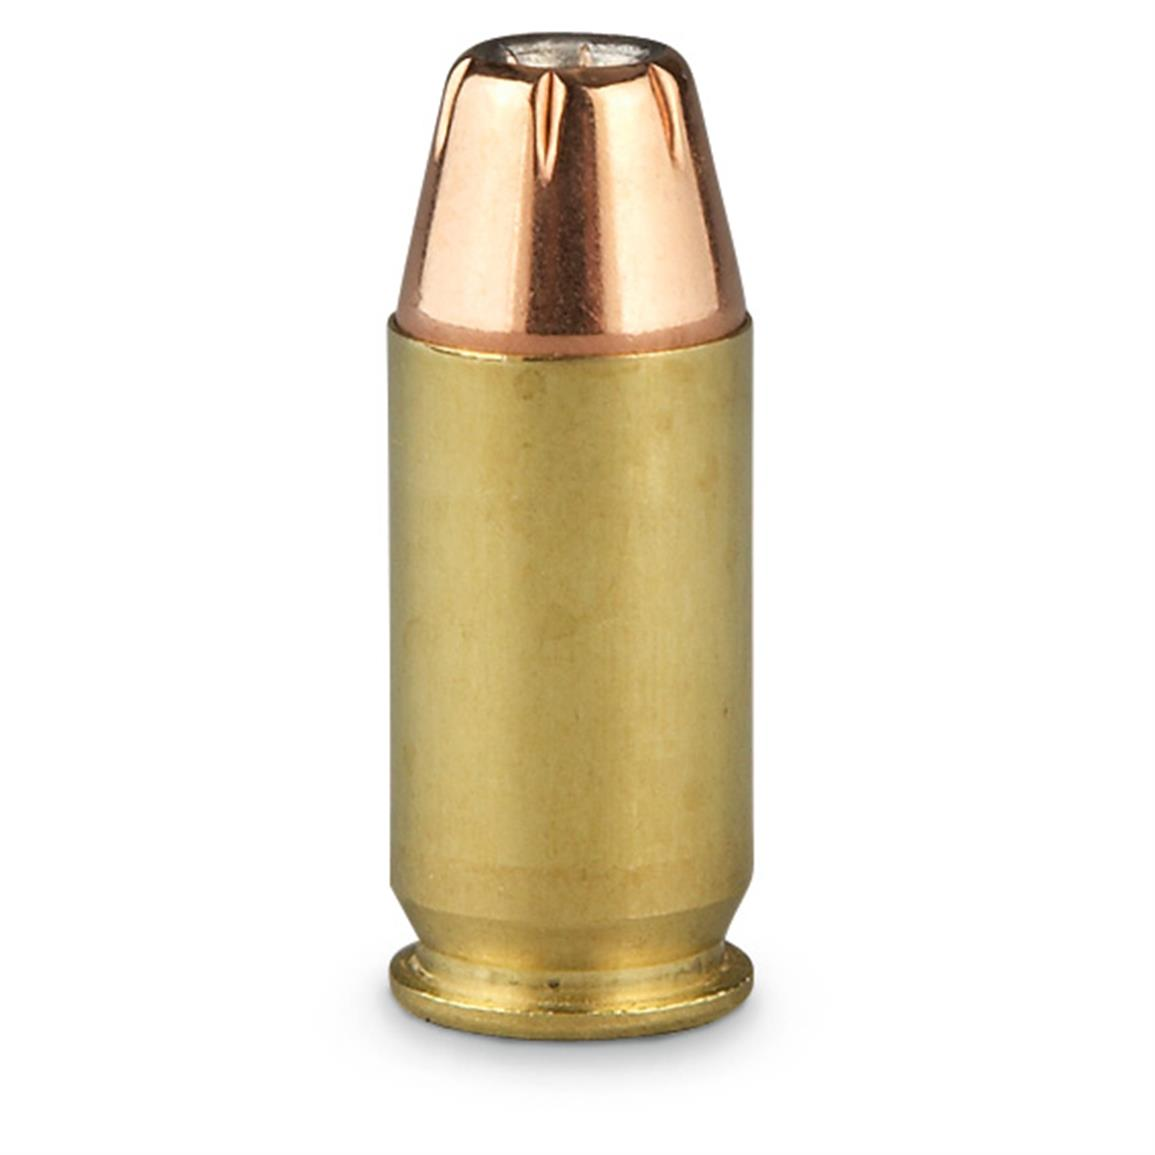 185 grain hollow-point bullet